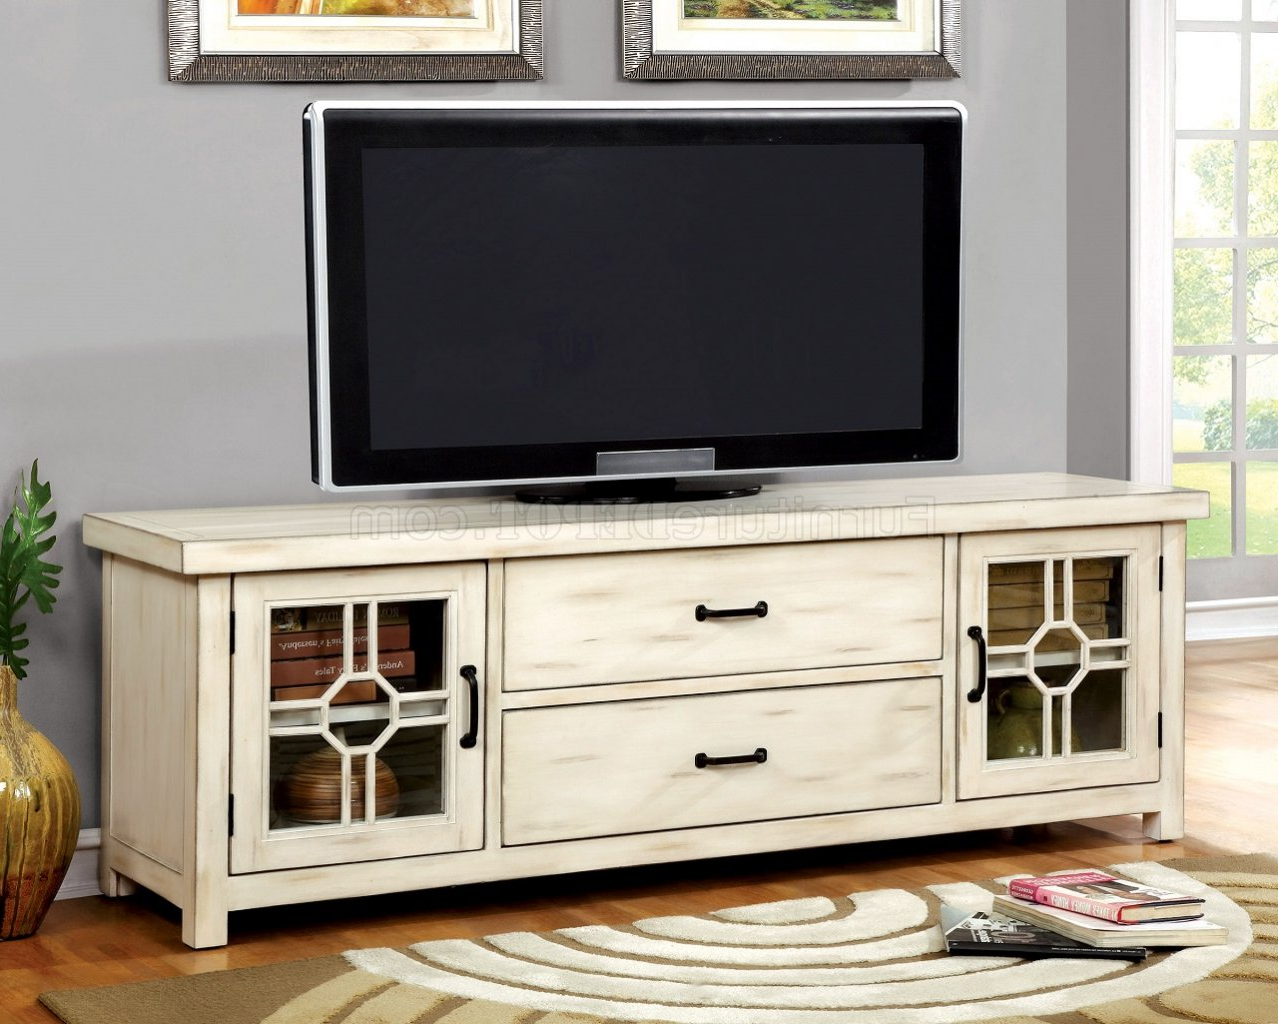 Current Alden Design Wooden Tv Stands With Storage Cabinet Espresso Intended For Ridley Cm5230 Tv Console In Antique Style White W/optional (View 5 of 10)